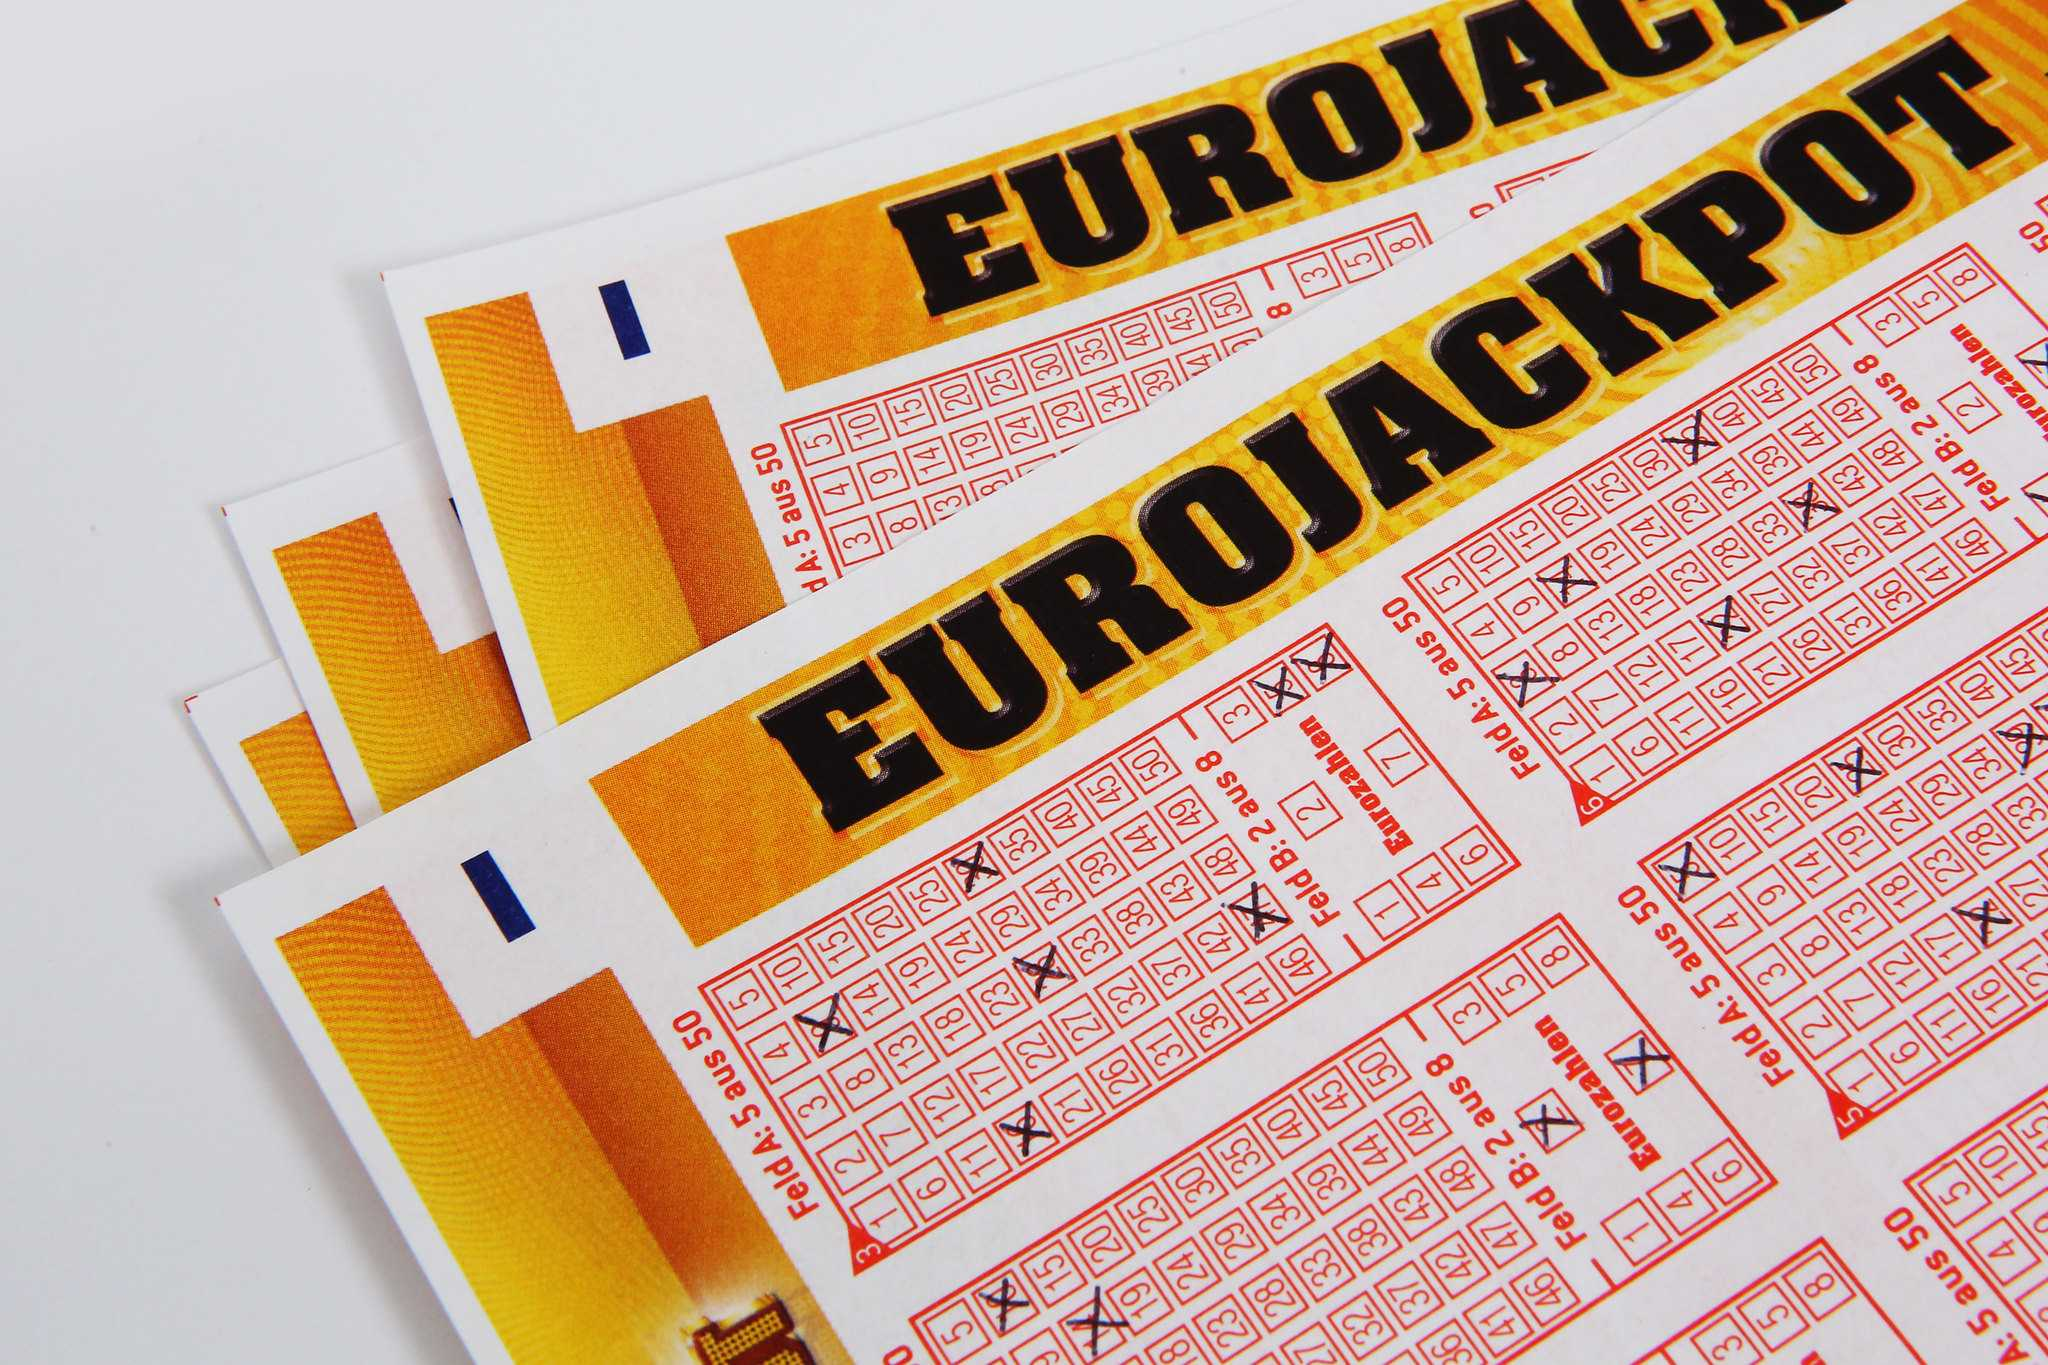 Eurojackpot: latest results & play online